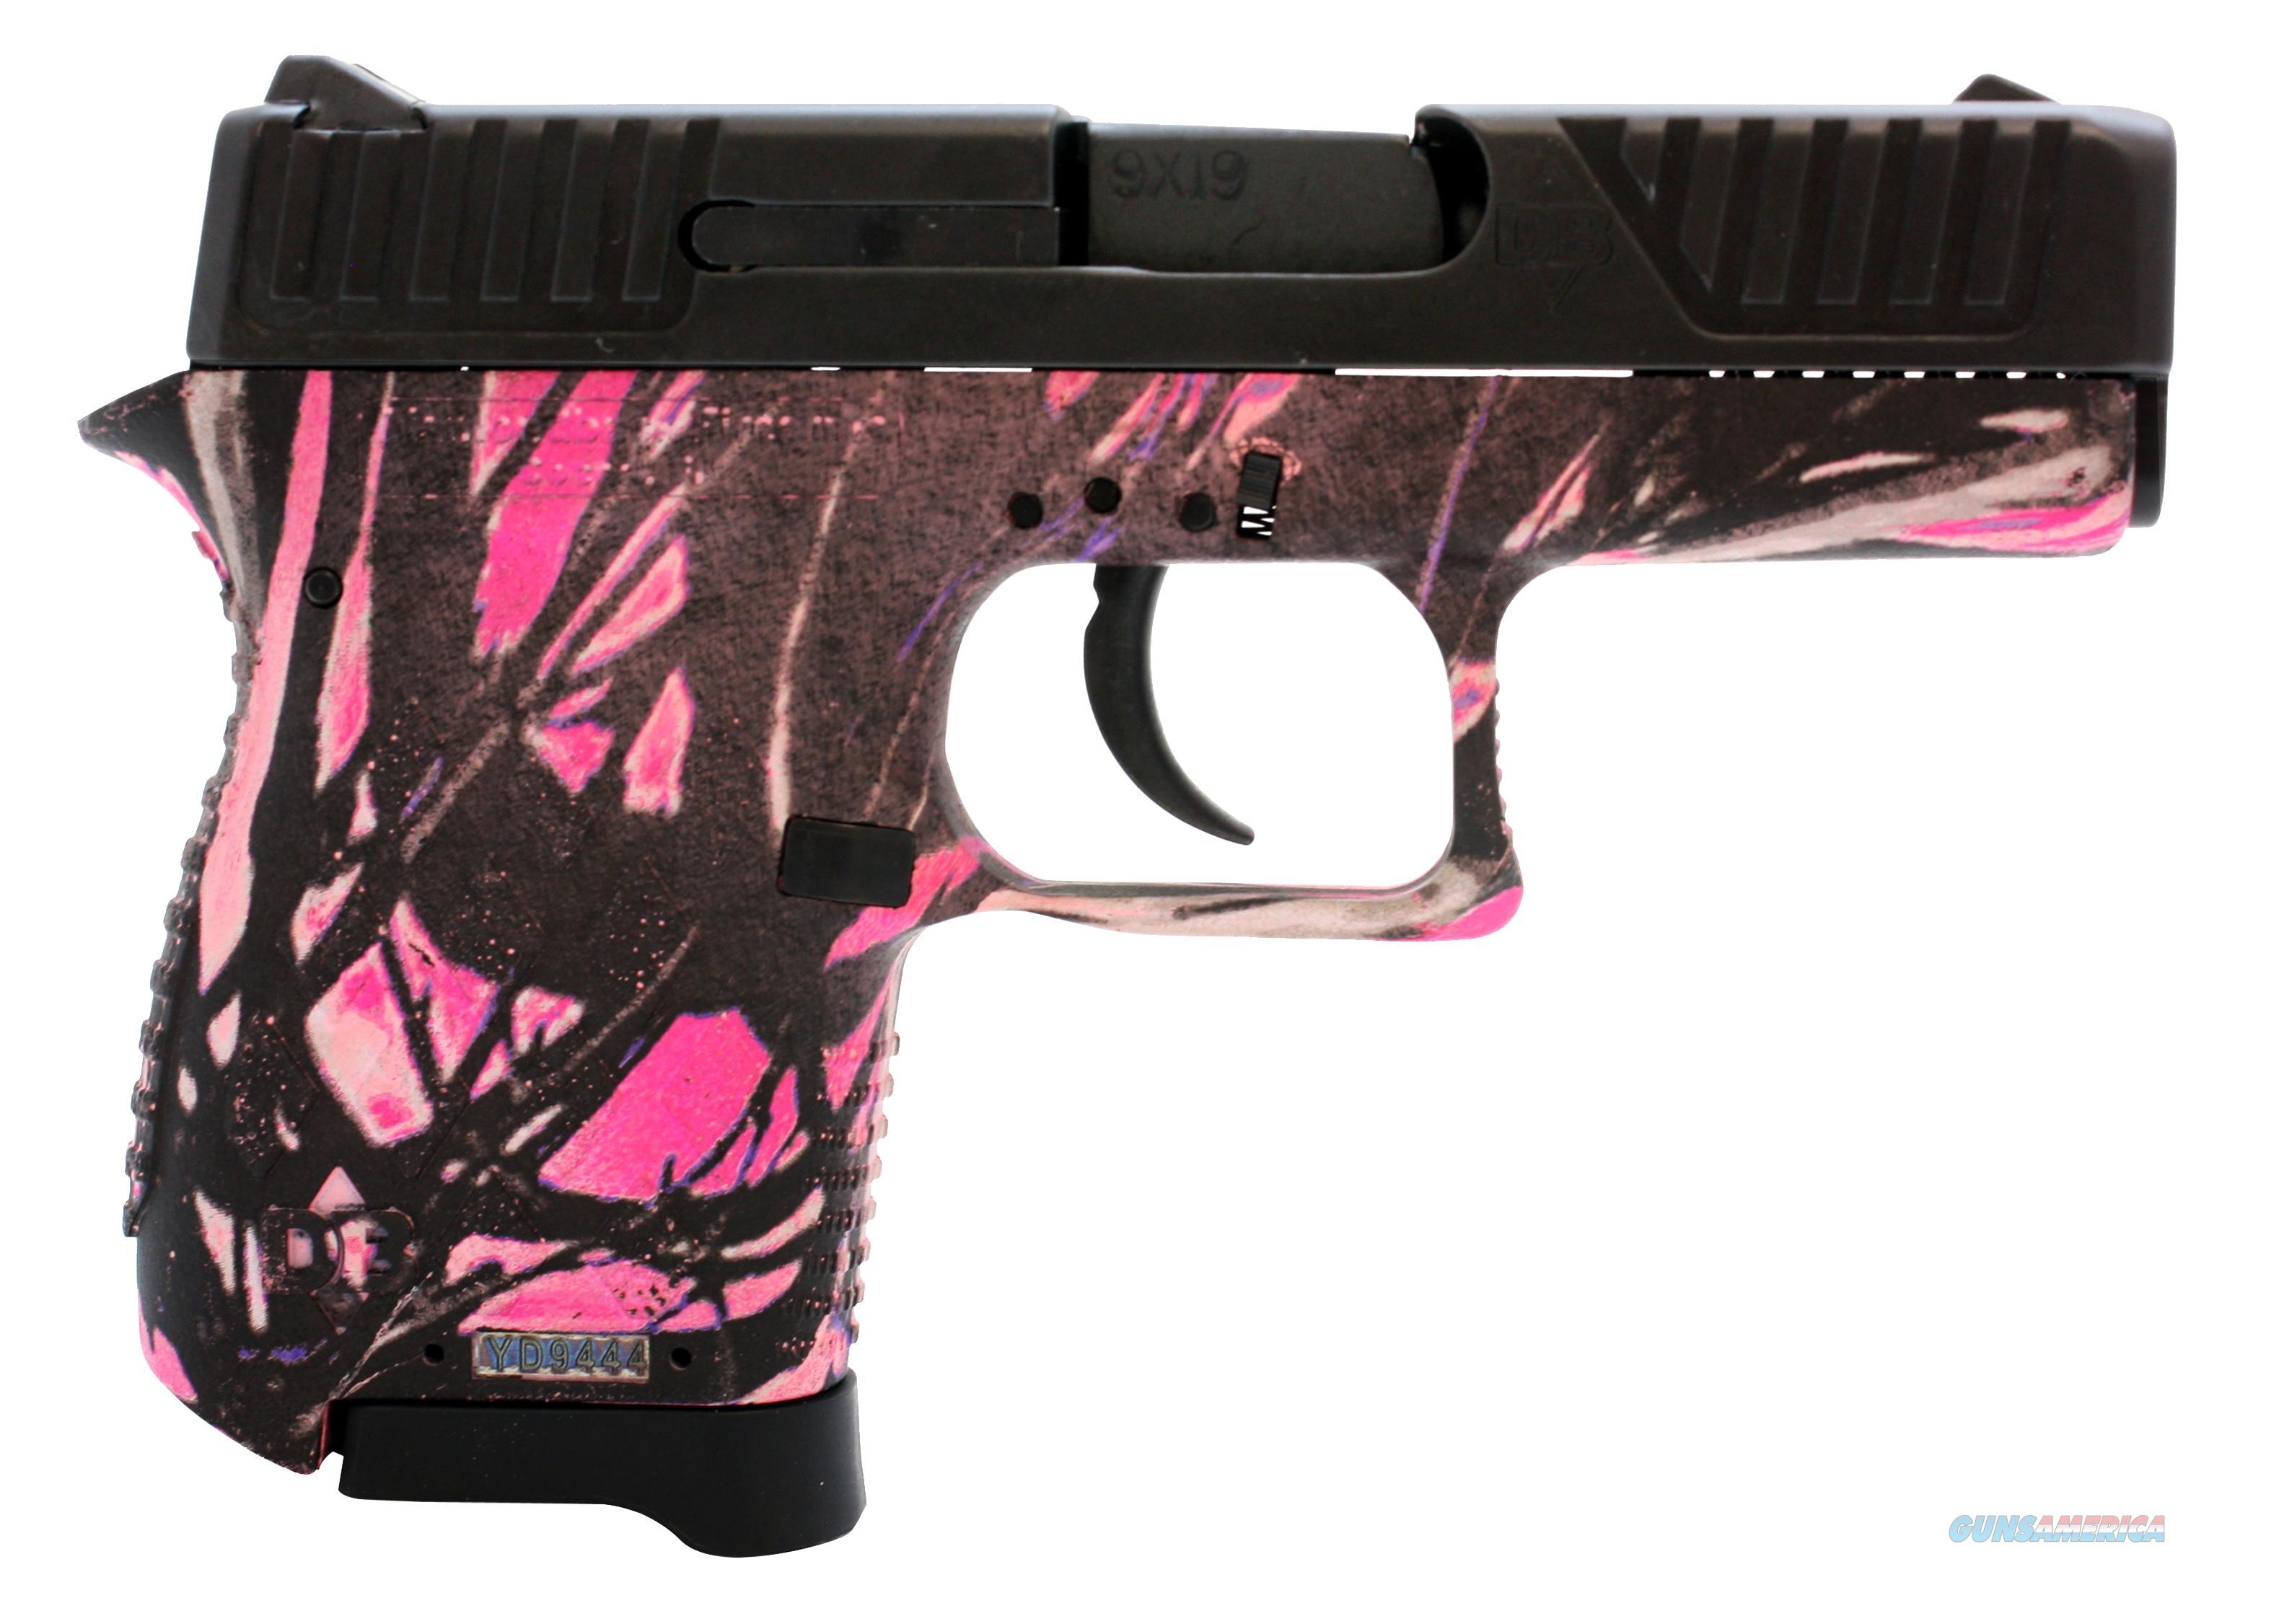 "Diamondback Db380mg Db380 Micro-Compact Single/Double 380 Automatic Colt Pistol (Acp) 2.8"" 6+1 Muddy Girl Polymer Grip Black DB380MG  Guns > Pistols > D Misc Pistols"